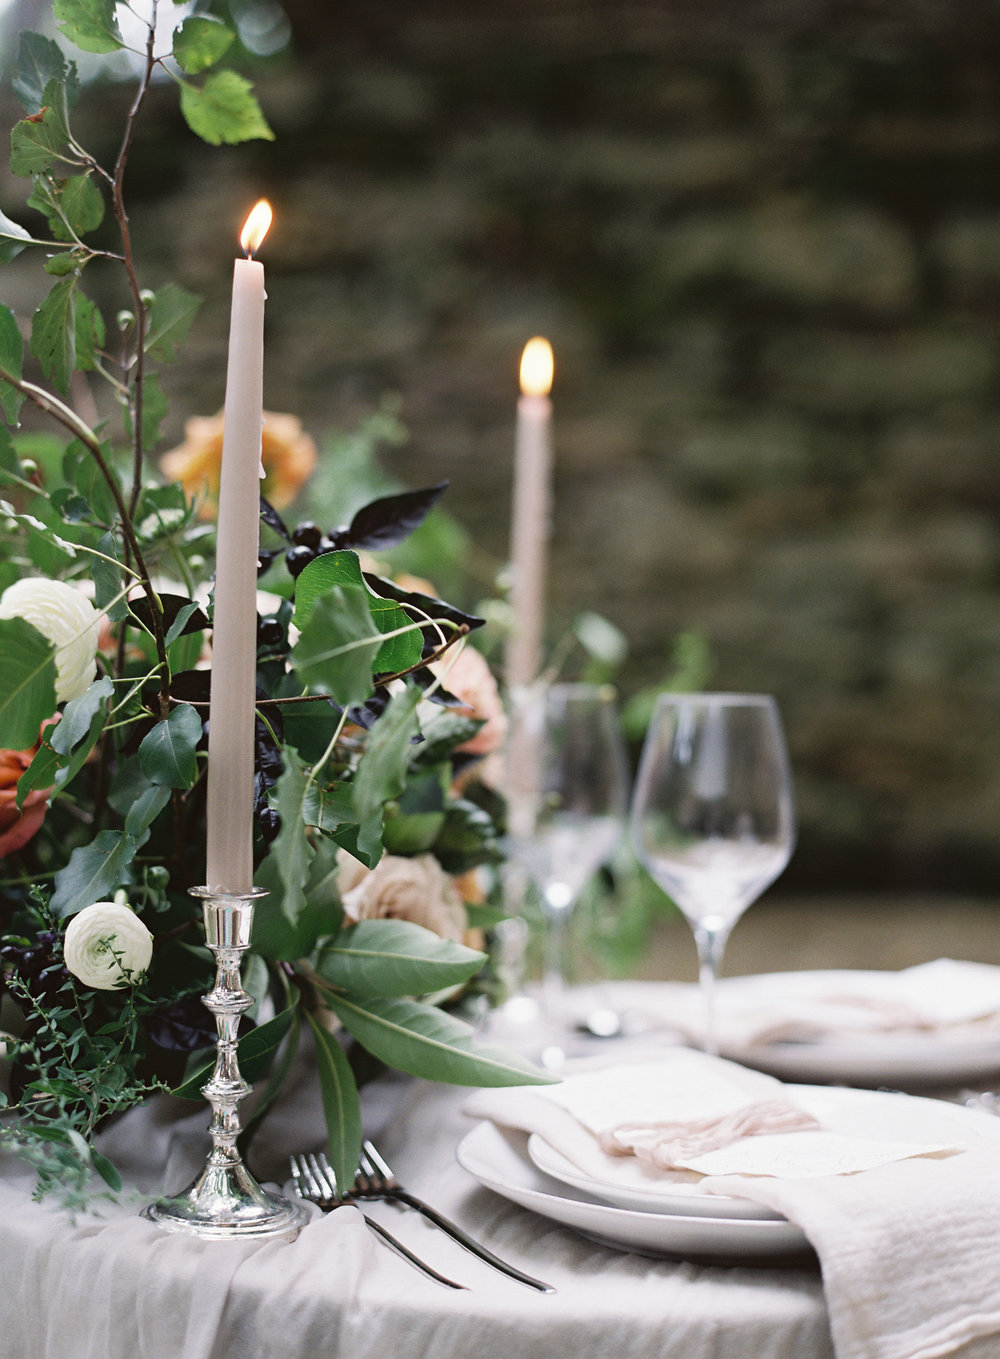 Autumn Wedding Inspiration at the Mill at Fine Creek by Richmond Virginia Wedding Planner East Made Event Company and Michael and Carina Photography32.jpg